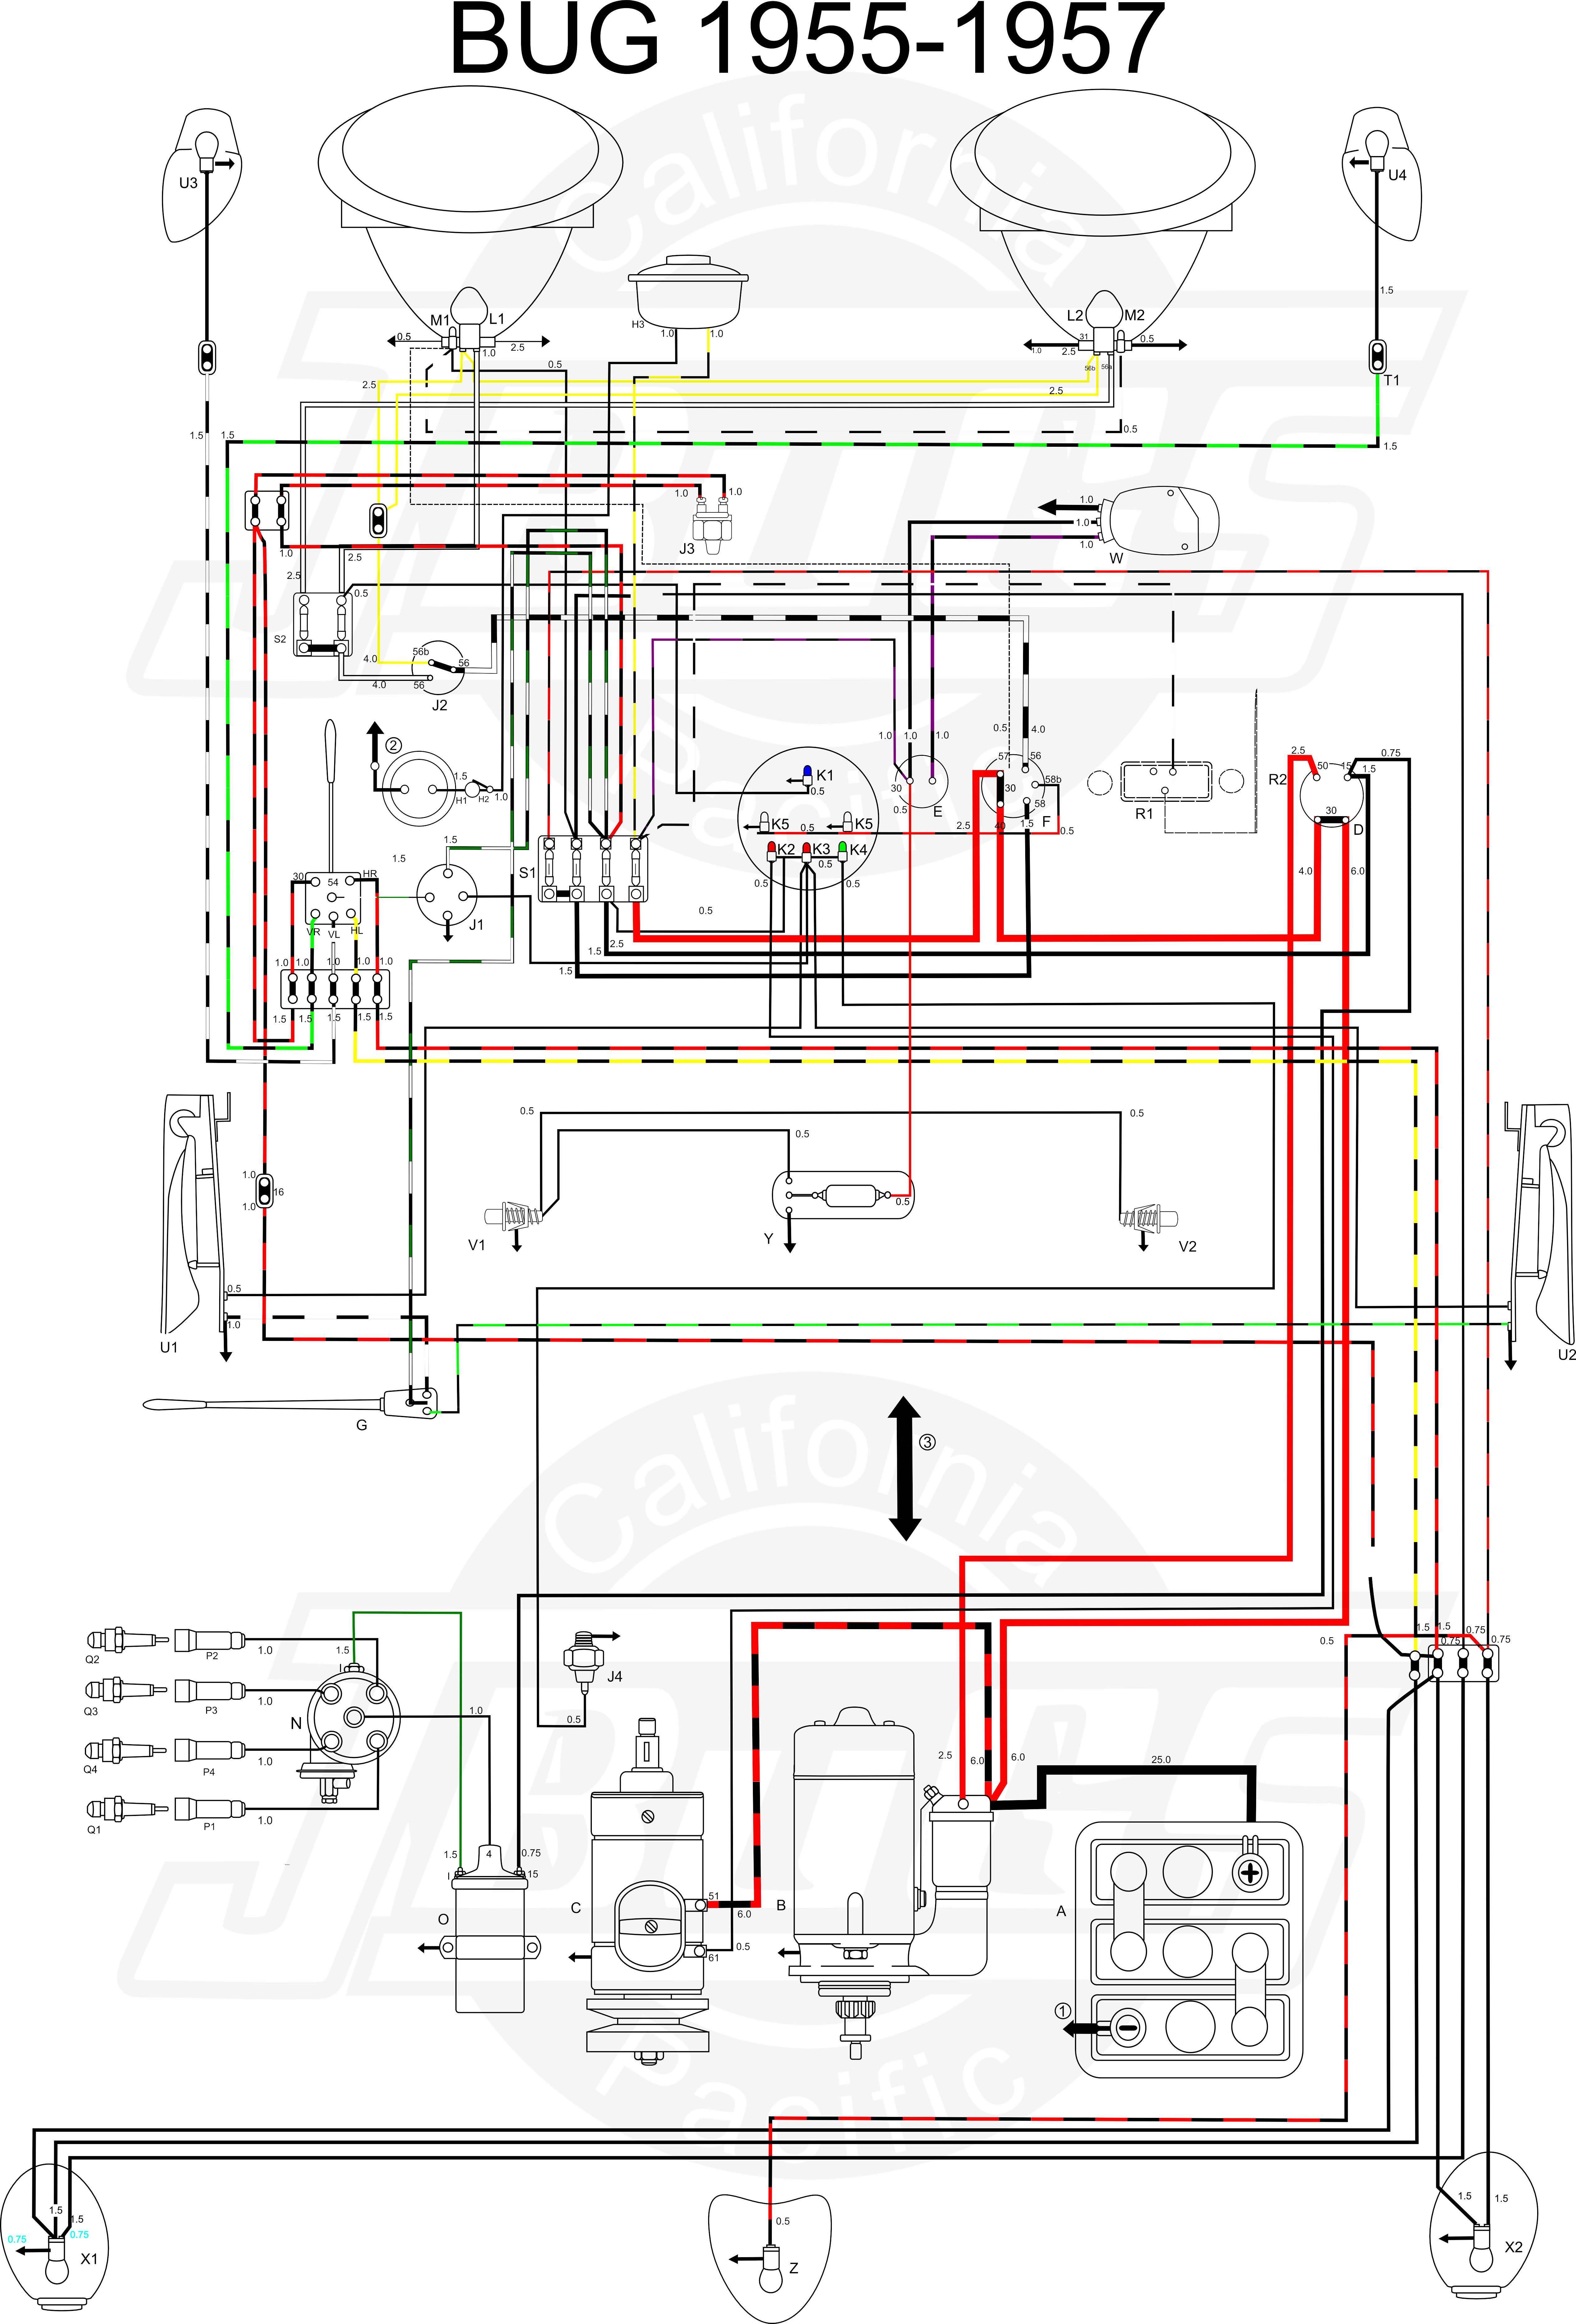 Diagram 1970 Vw Beetle Turn Signal Wiring Diagram Full Version Hd Quality Wiring Diagram Susperin Oltreilmurofestival It